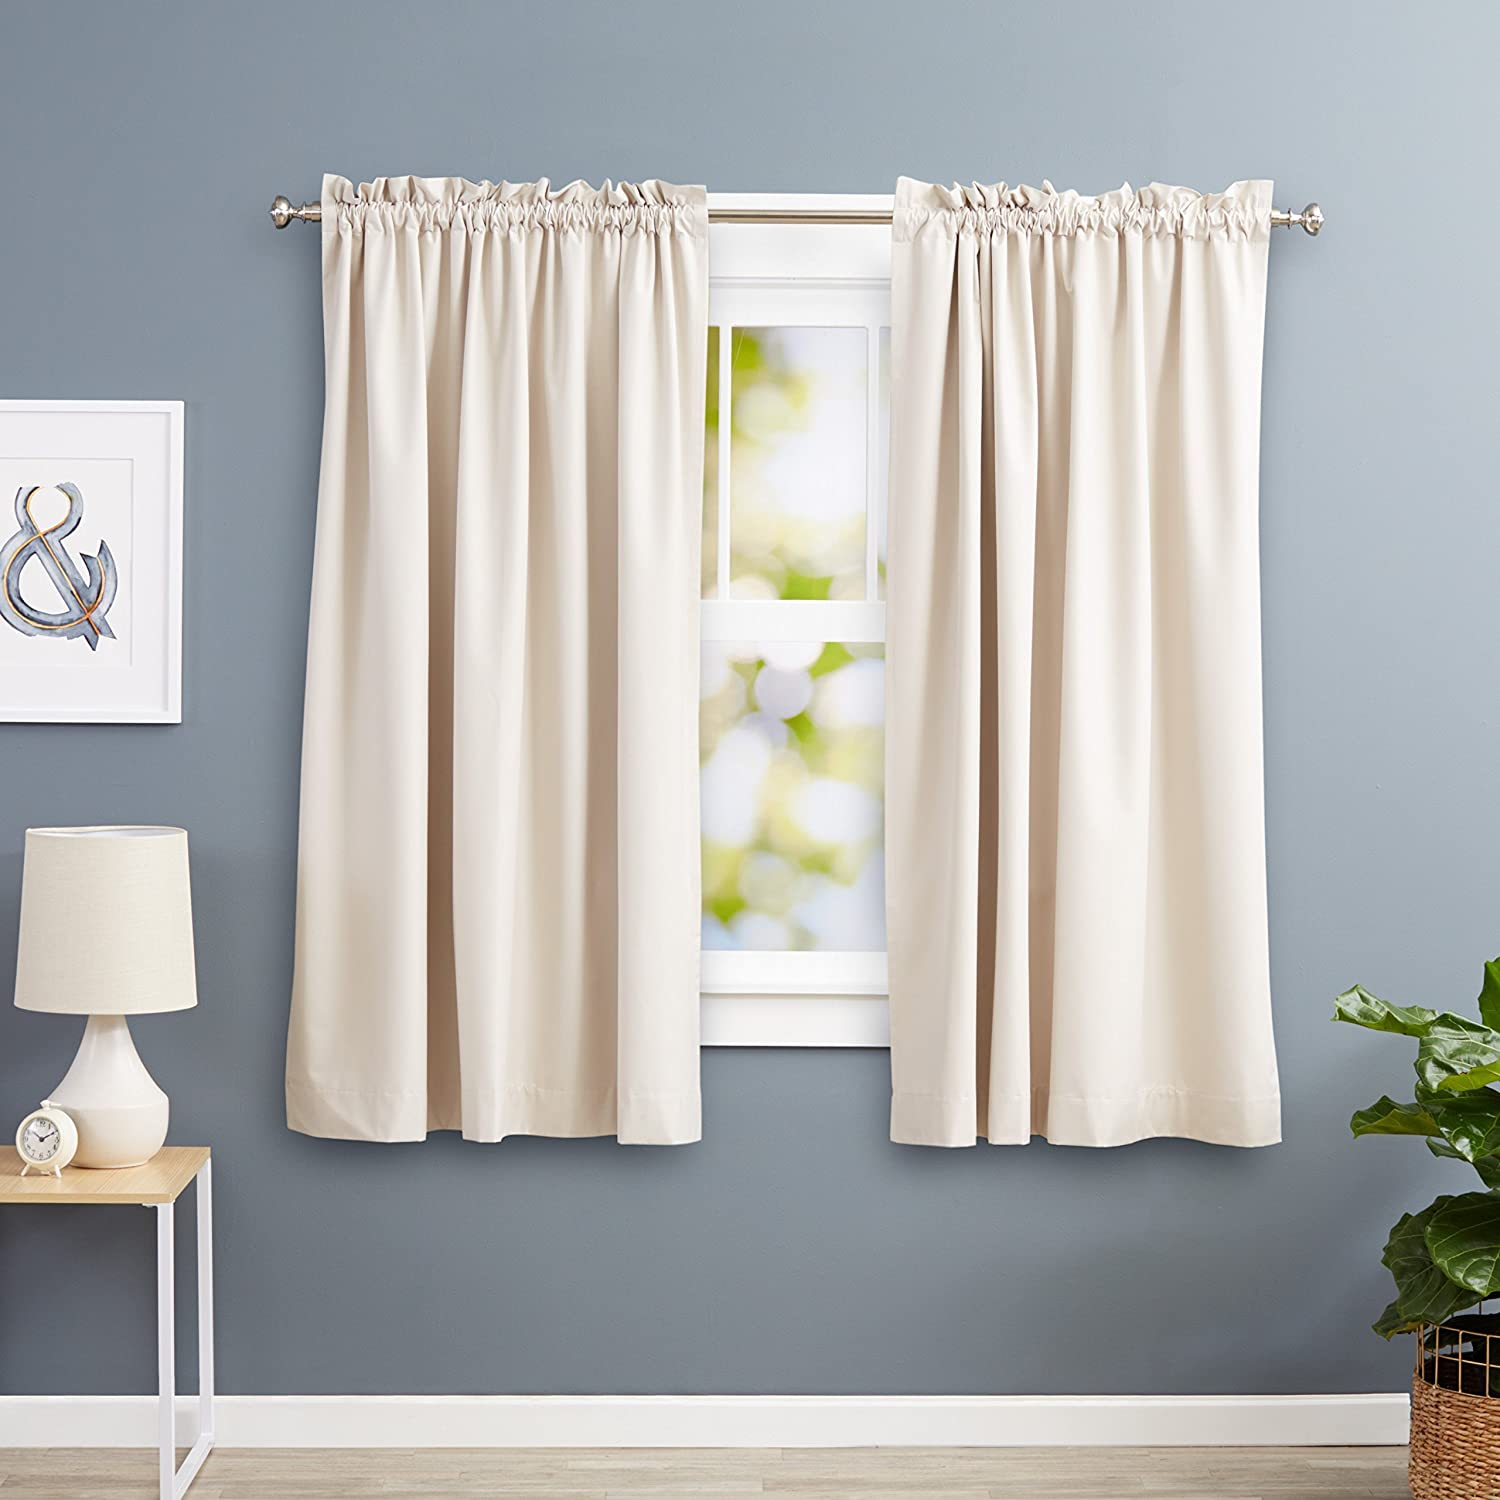 AmazonBasics Room Darkening Thermal Insulating Blackout Curtain Set Beige